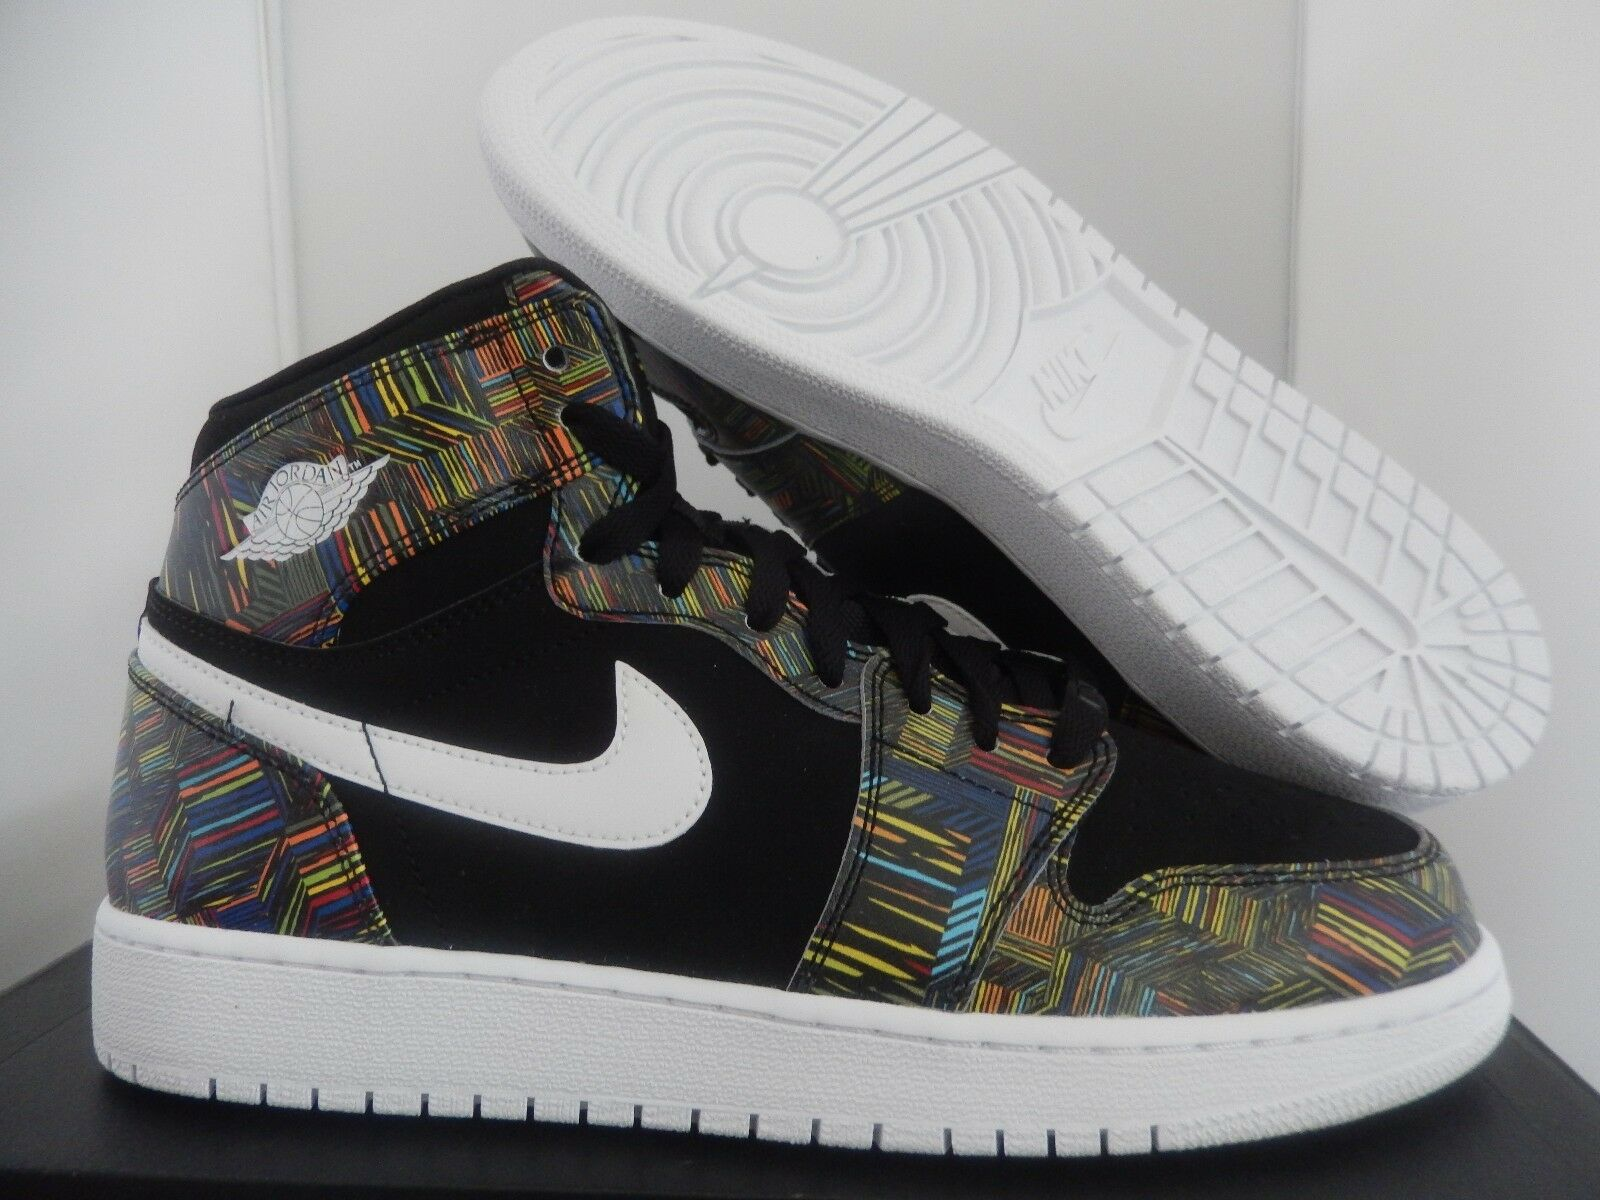 NIKE AIR JORDAN 1 RETRO HIGH BHM GG Price reduction Special limited time